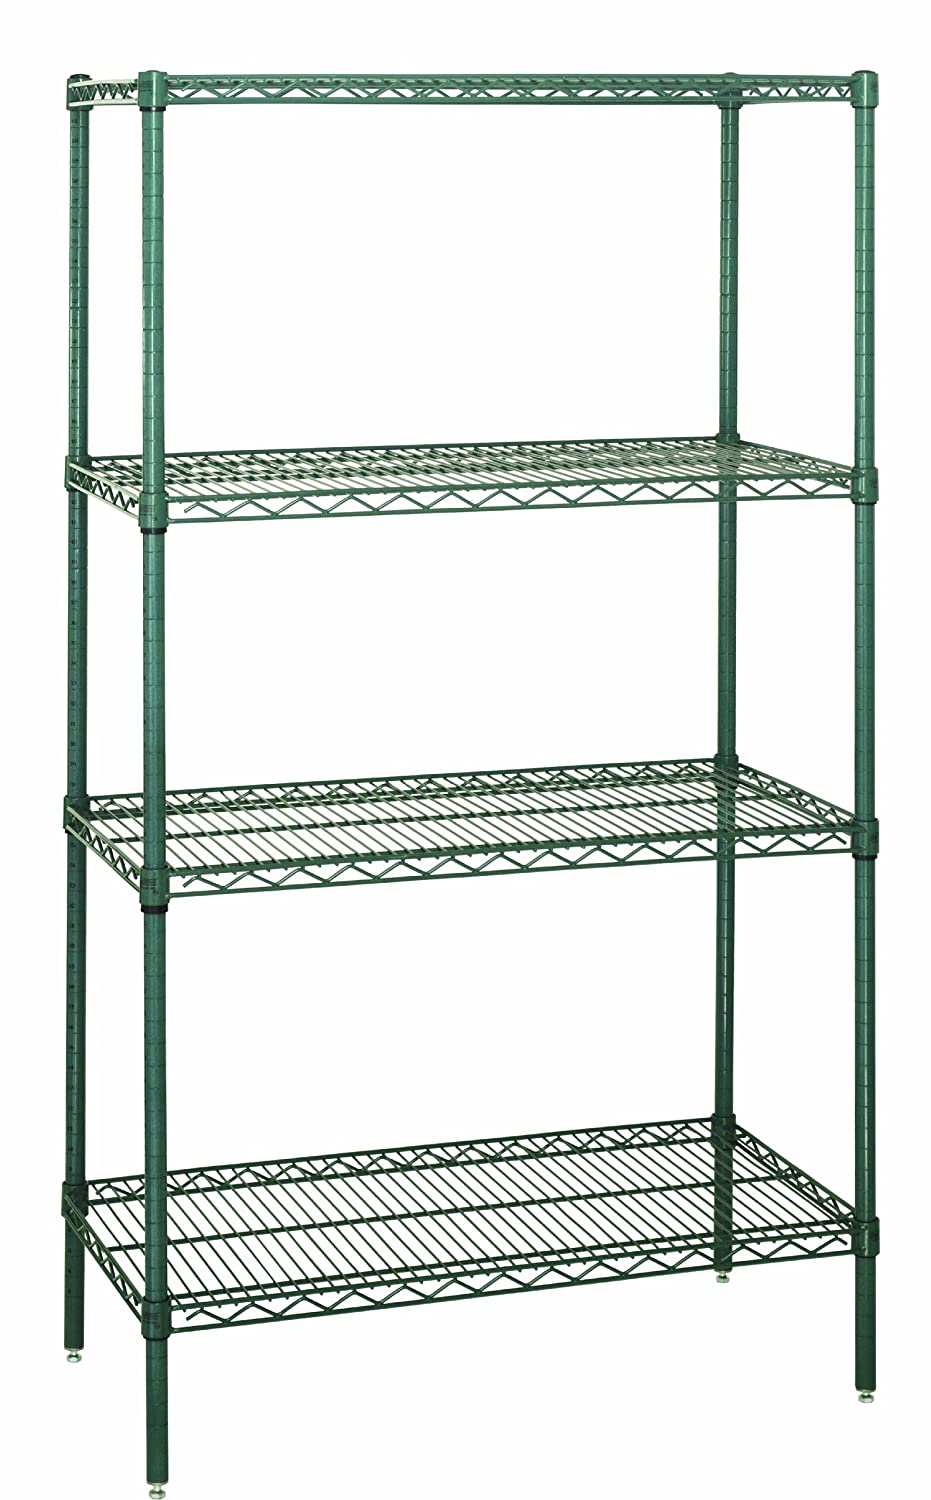 Proform Finish 24 Width x 72 Length x 74 Height Quantum Storage Systems WR74-2472P Starter Kit for 74 High 4-Tier Wire Shelving Unit 600 lb Per Shelf Capacity